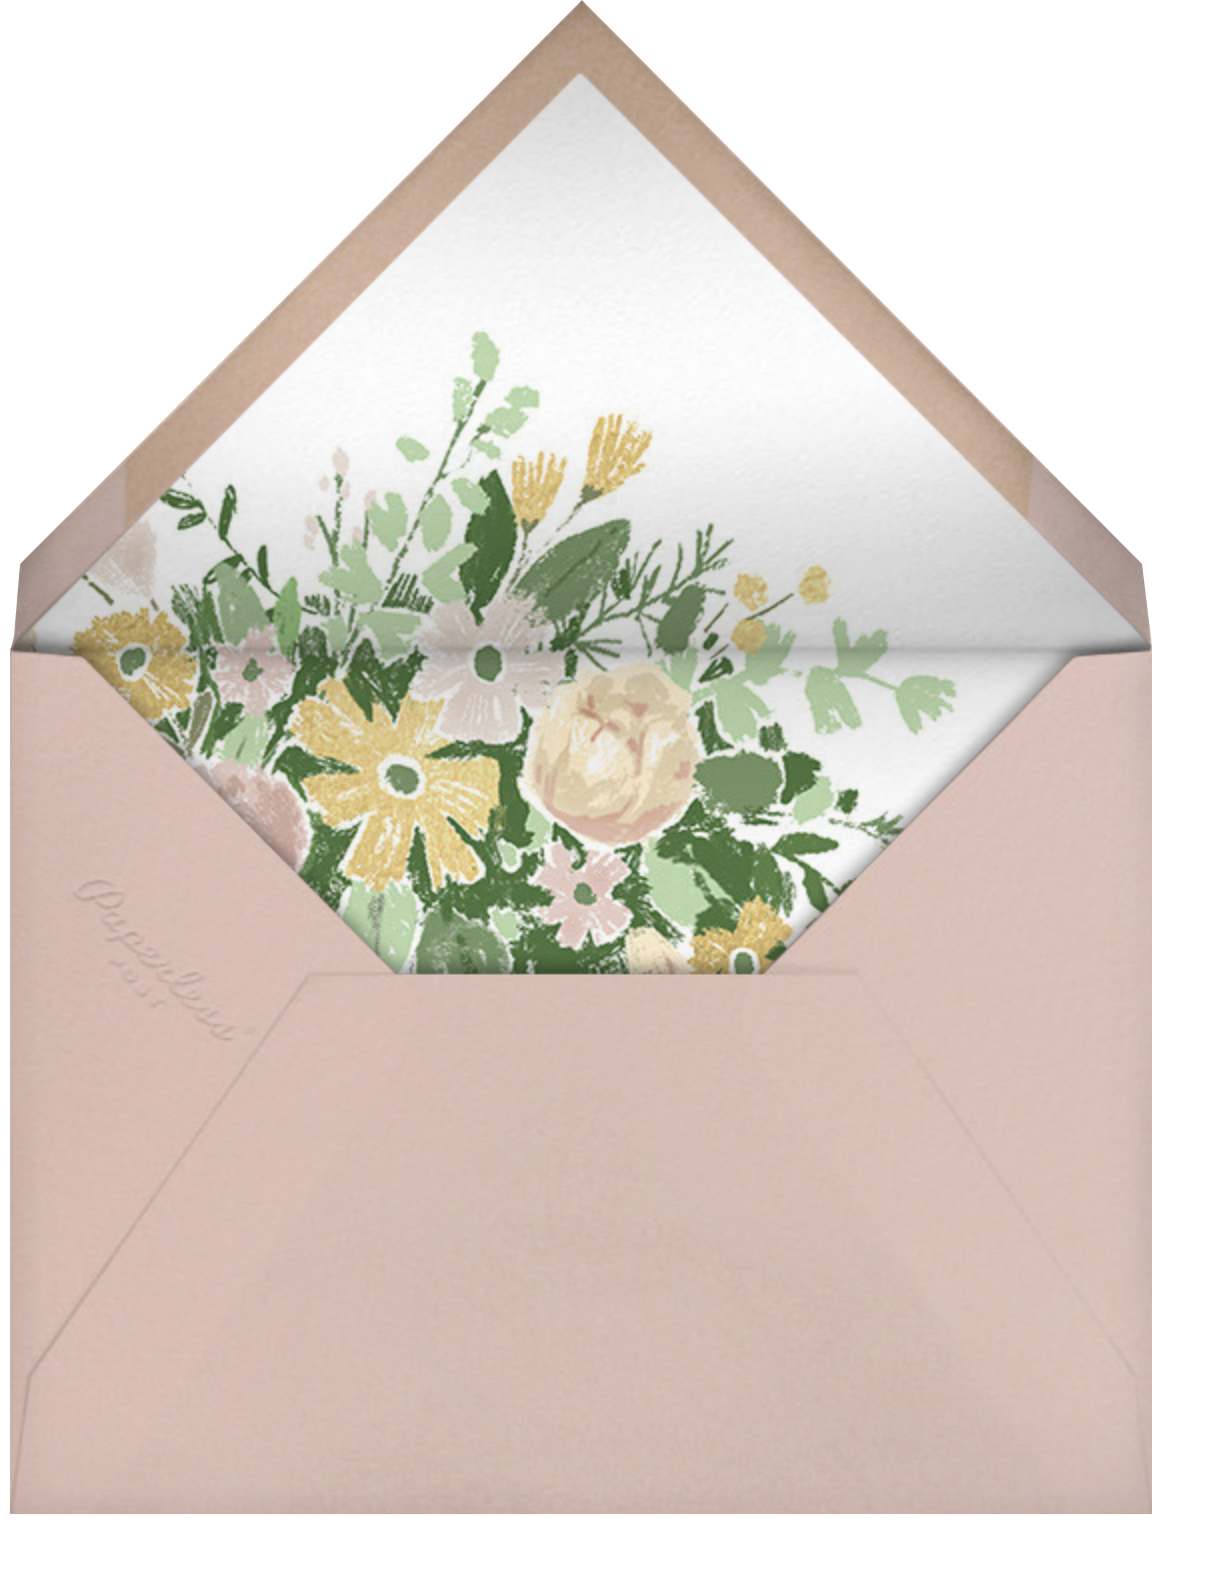 Dripping Floral (Invitation) - Moss - Paperless Post - All - envelope back